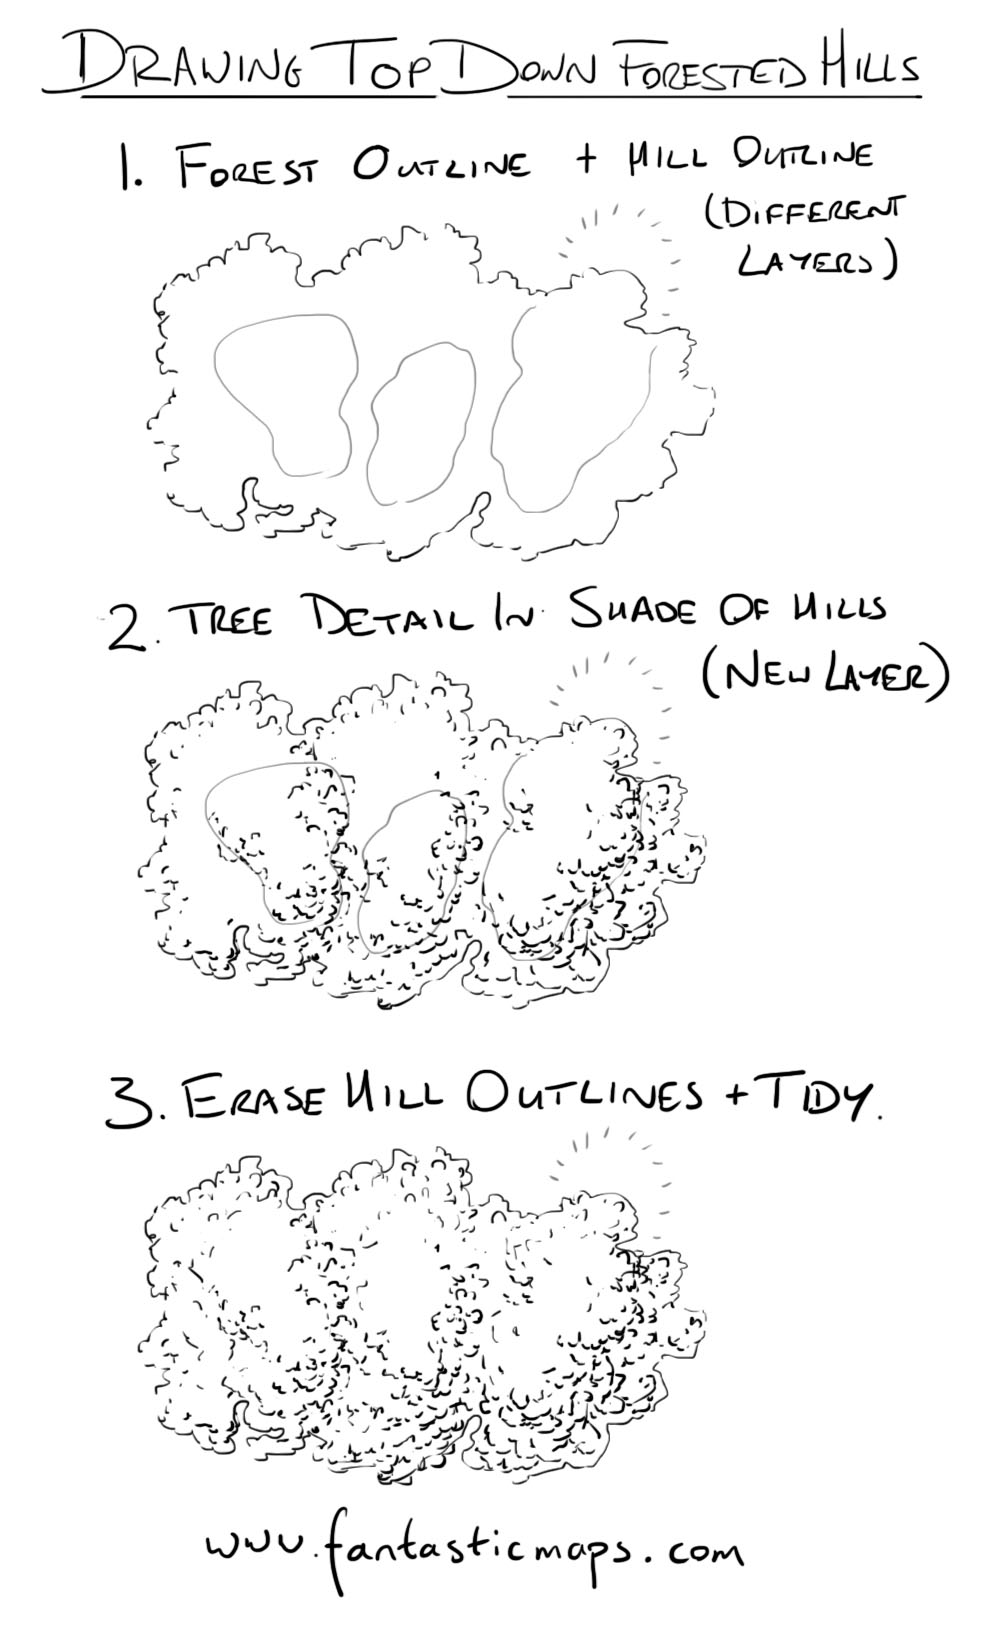 How To Draw Forested Hills On A Top Down Map Fantastic Maps